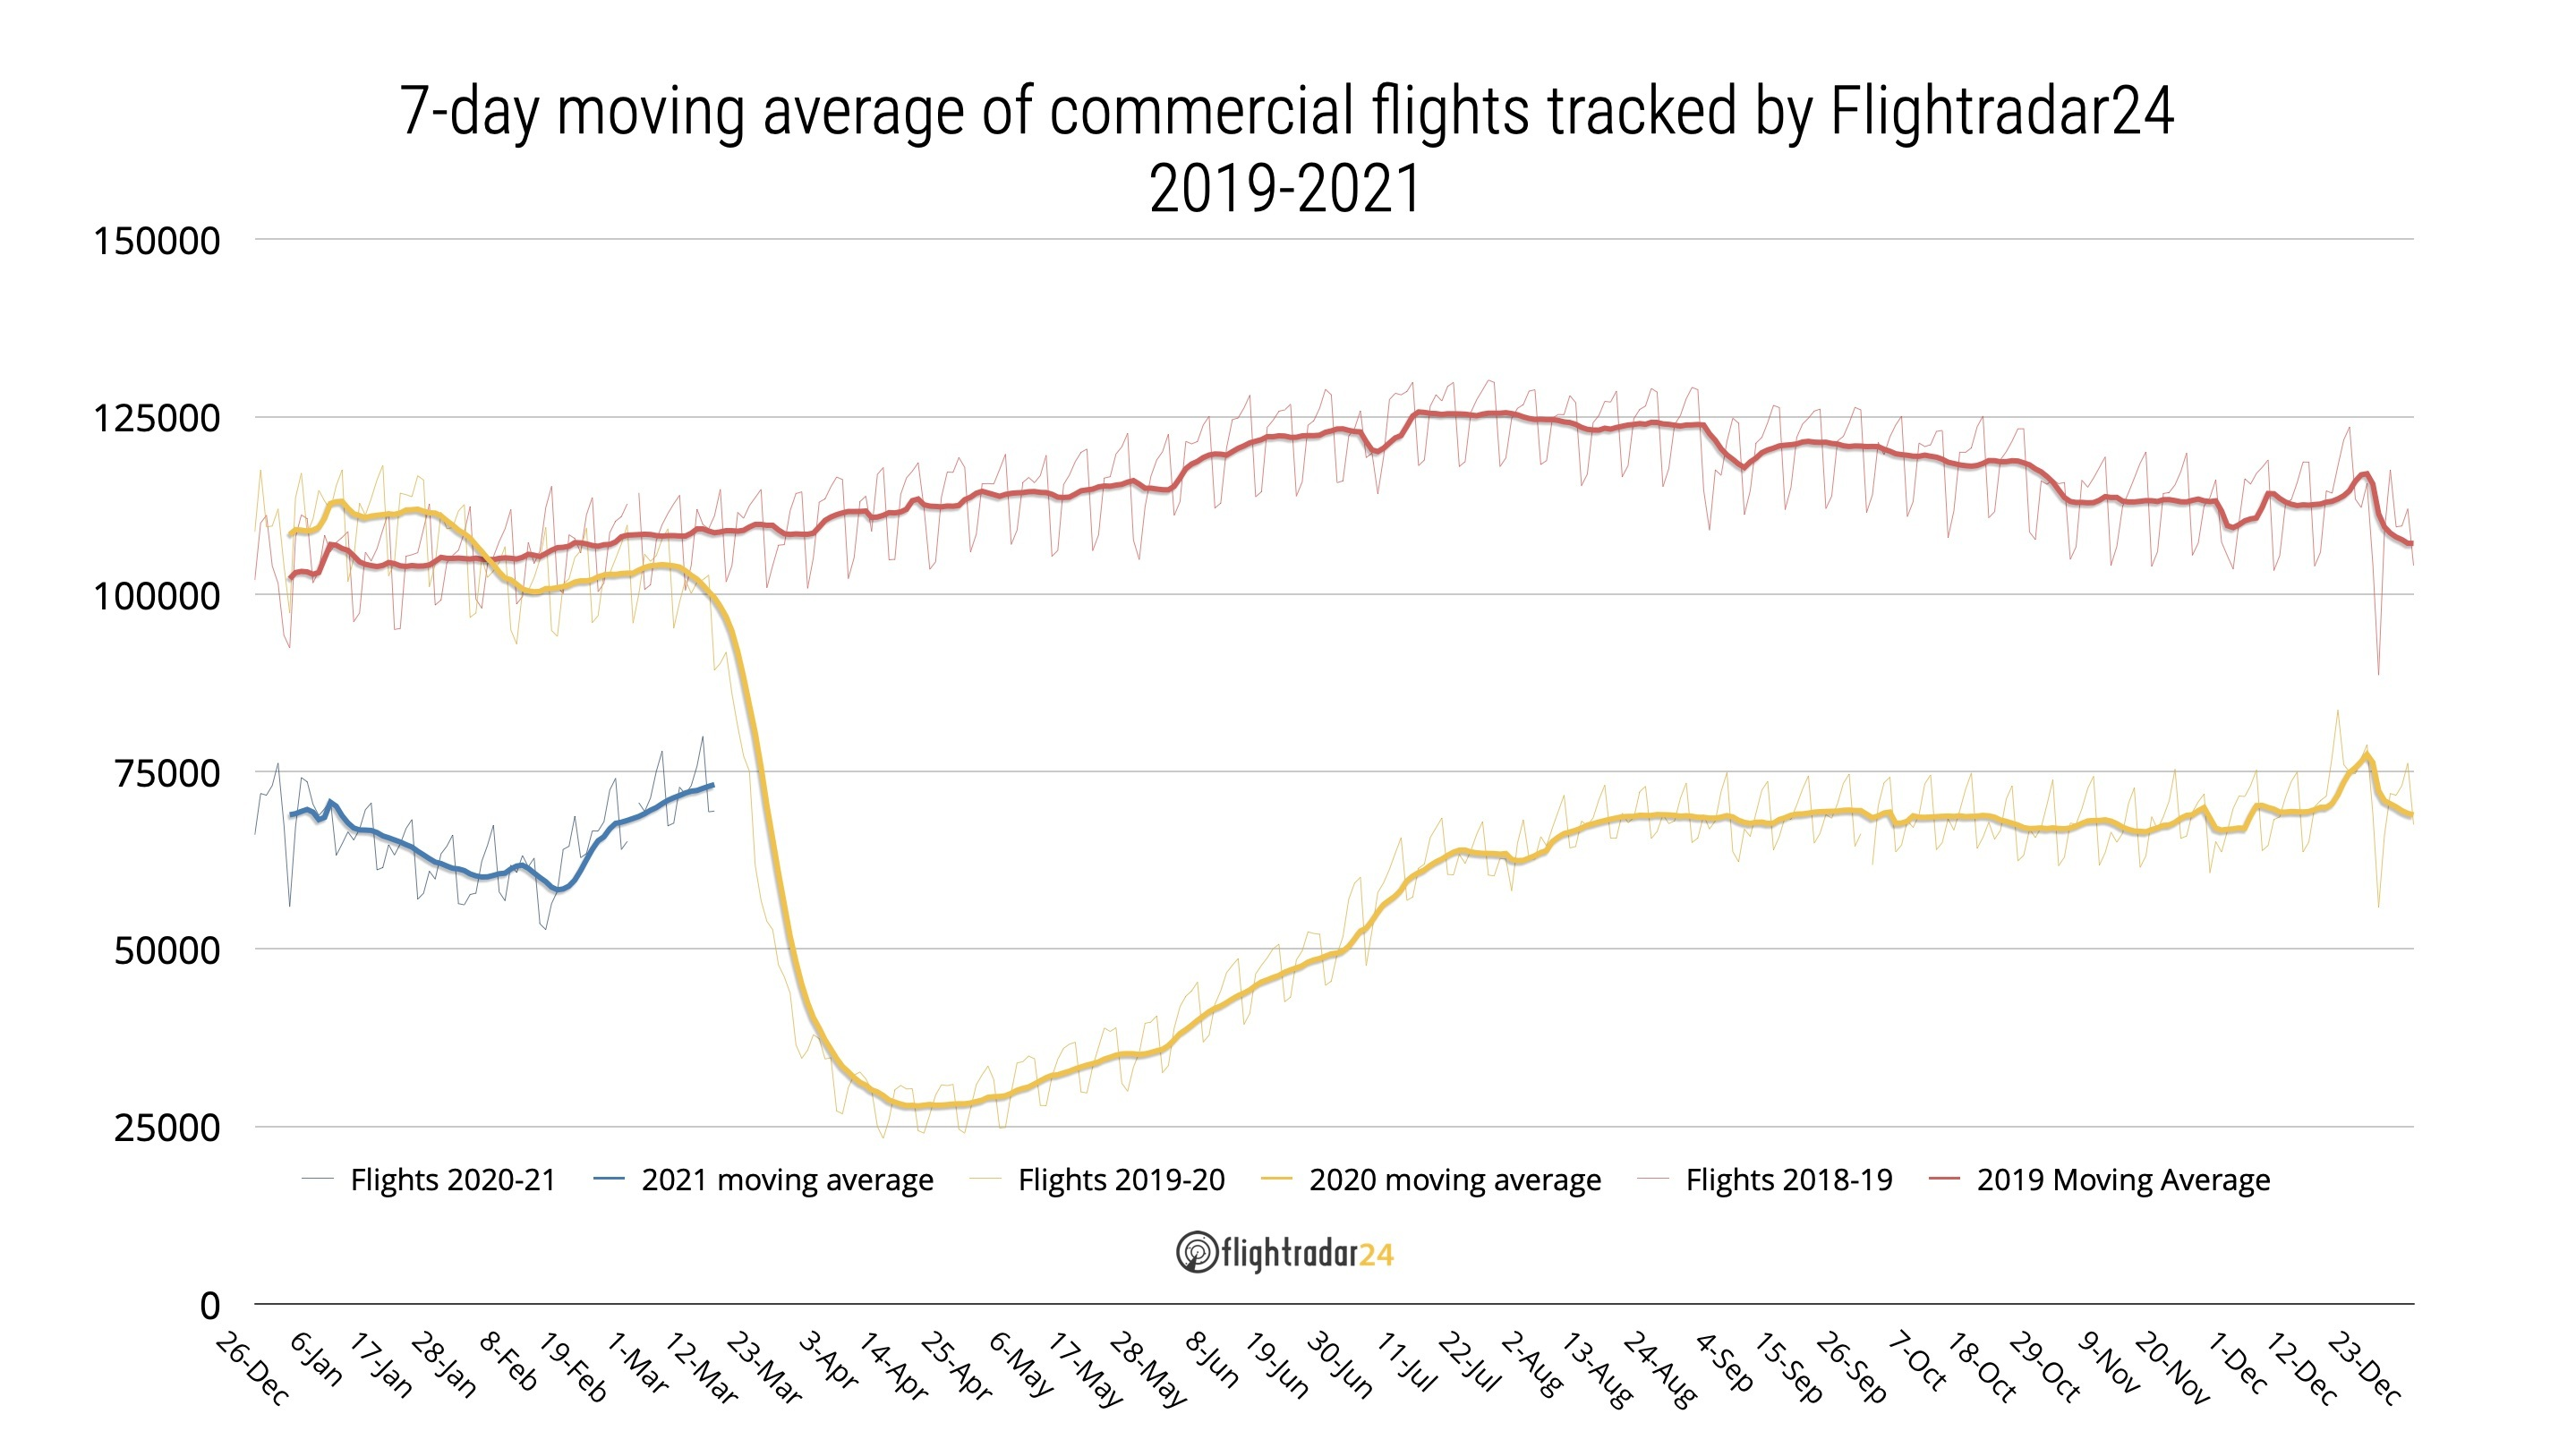 Chart showing commercial flights tracked by Flightradar24 from January 2019 to March 2021